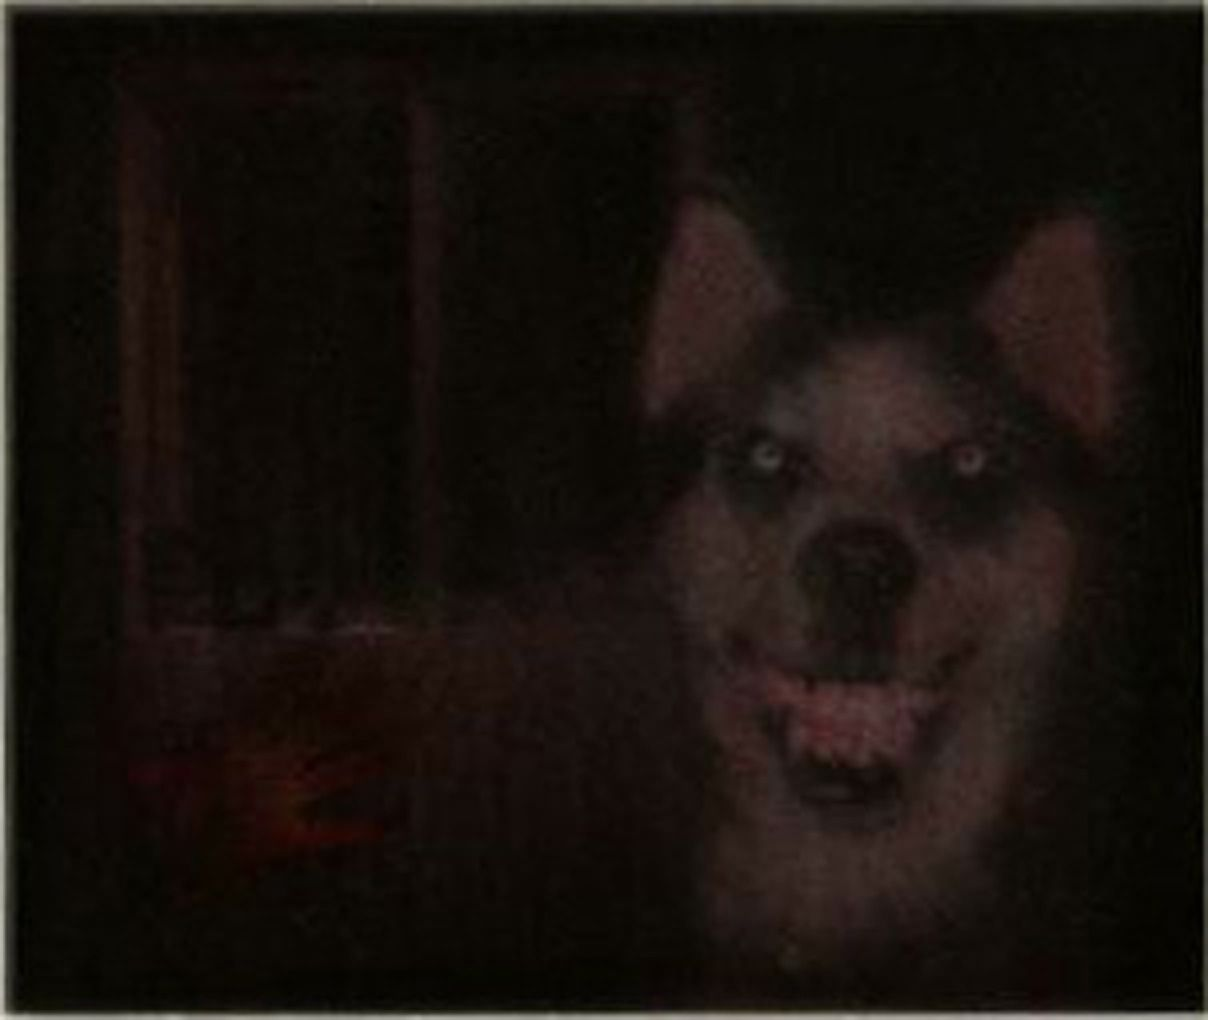 Smile Jpg Also Known As Smile Dog Is A Creepypasta Story About A Haunted Image That Drives Those Who View It Insan Scary Photos Creepy Images Creepy Pictures